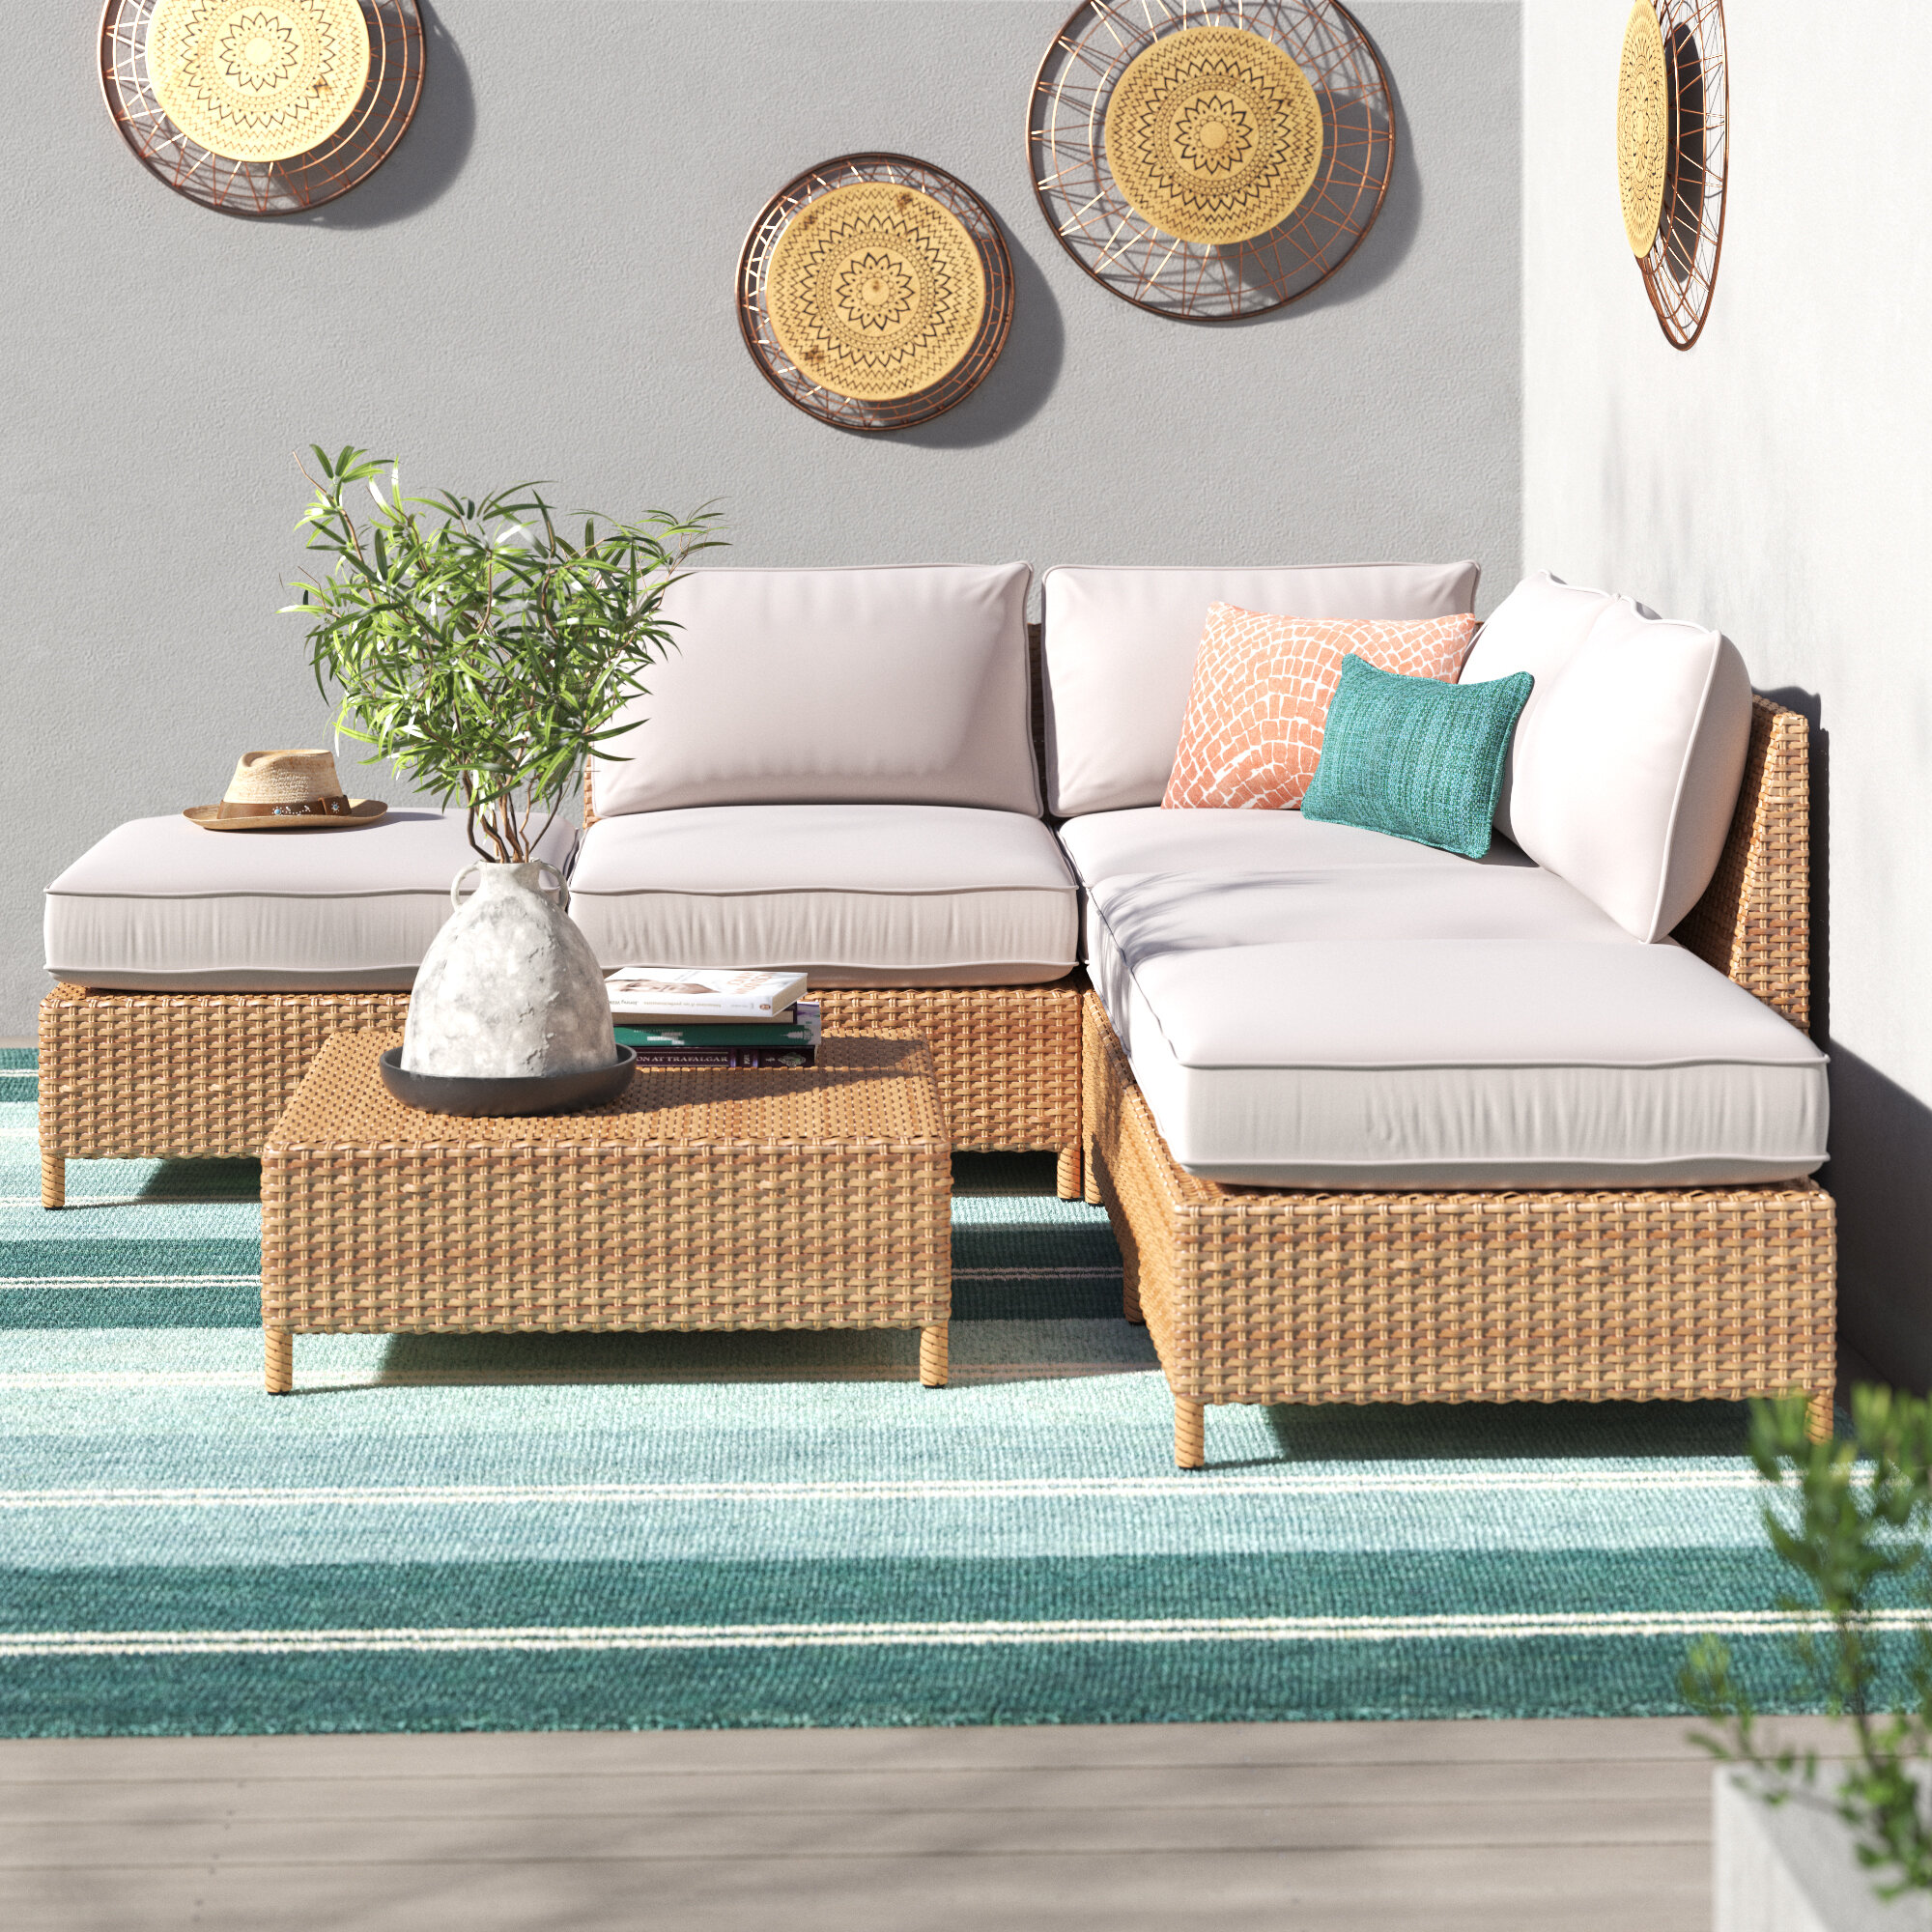 Euclid 6 Piece Sectional Seating Group With Cushions Reviews Joss Main